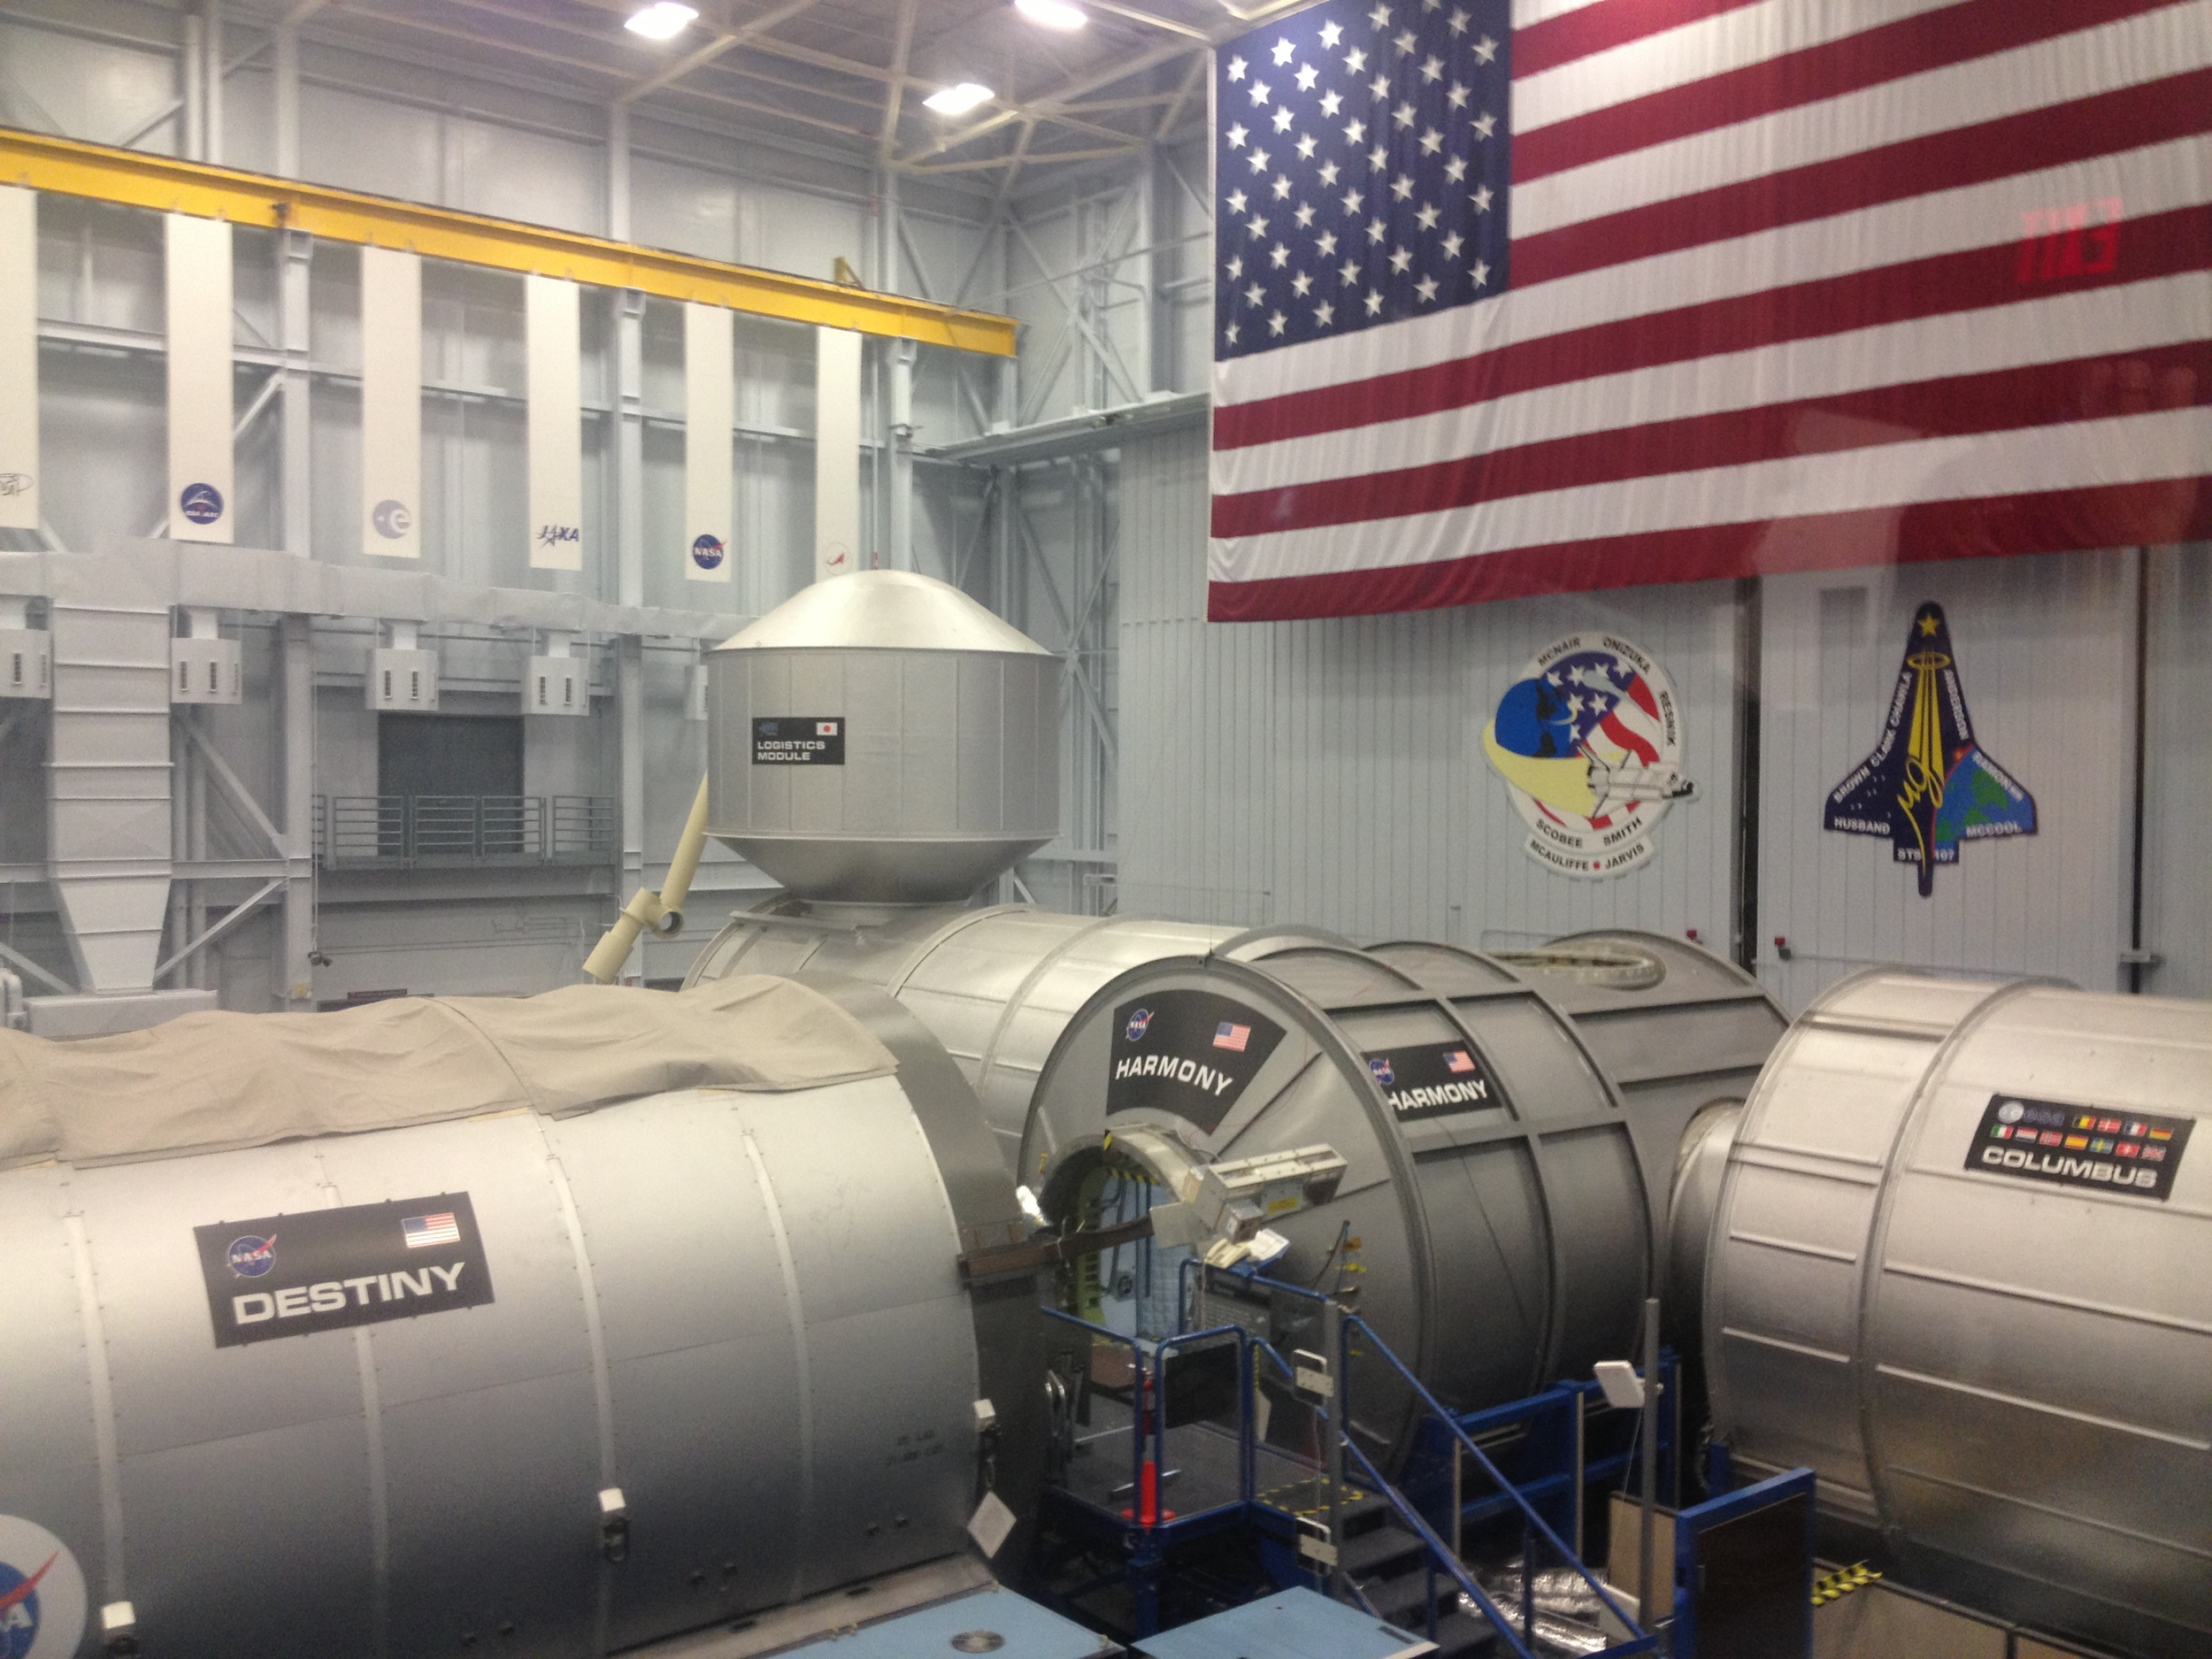 The catwalks above the ISS mockup allowed us to appreciate the large scale of the station. It's about the size of a football field.